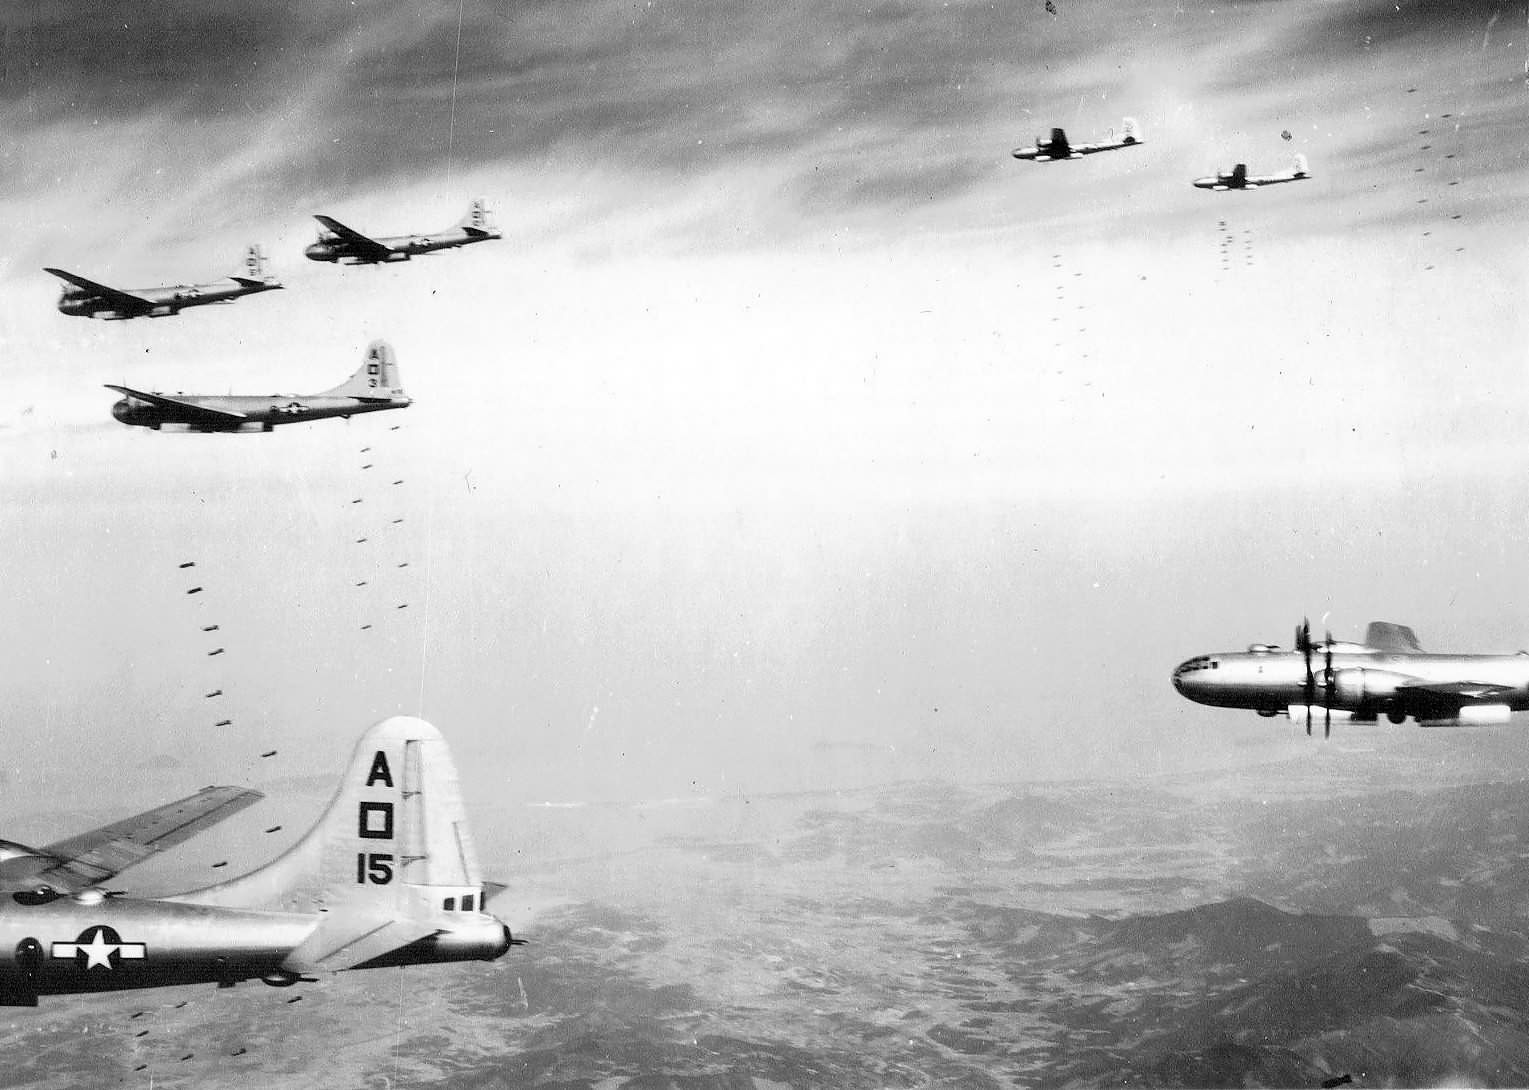 B-29 Superfortress A square 15 bombing a target